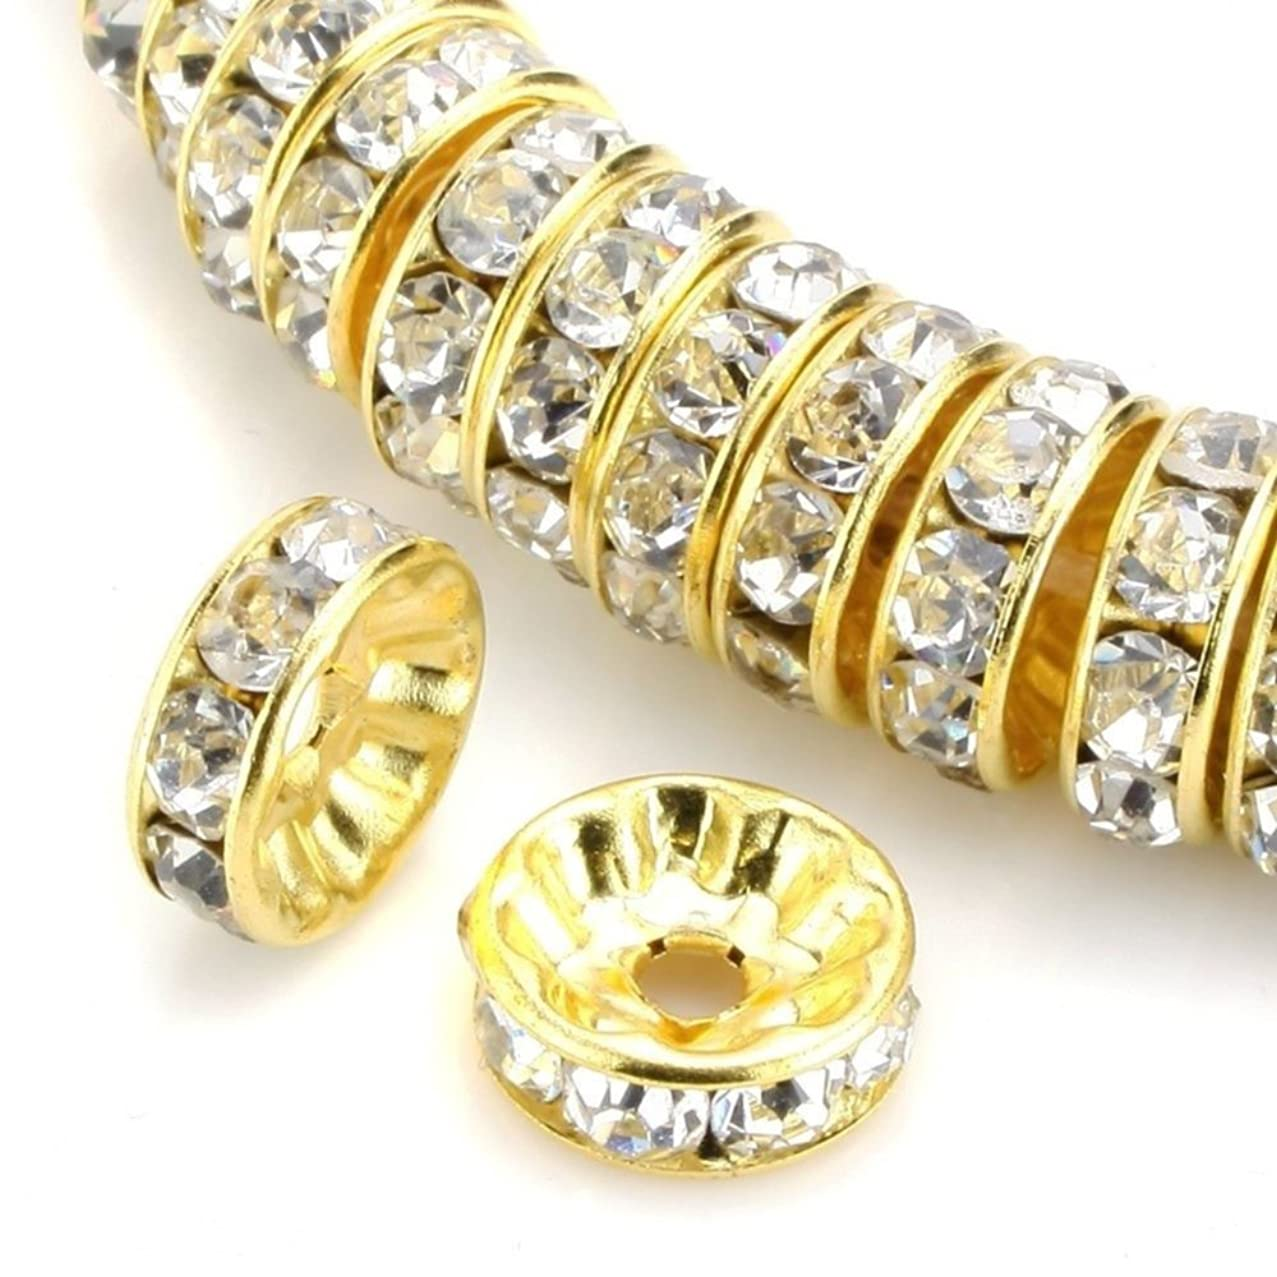 100pcs Best Quality Rondelle Spacer Beads 5mm Crystal Clear Top Quality Austrian Crystal Rhinestone 14k Gold Plated Copper Brass CF4-501